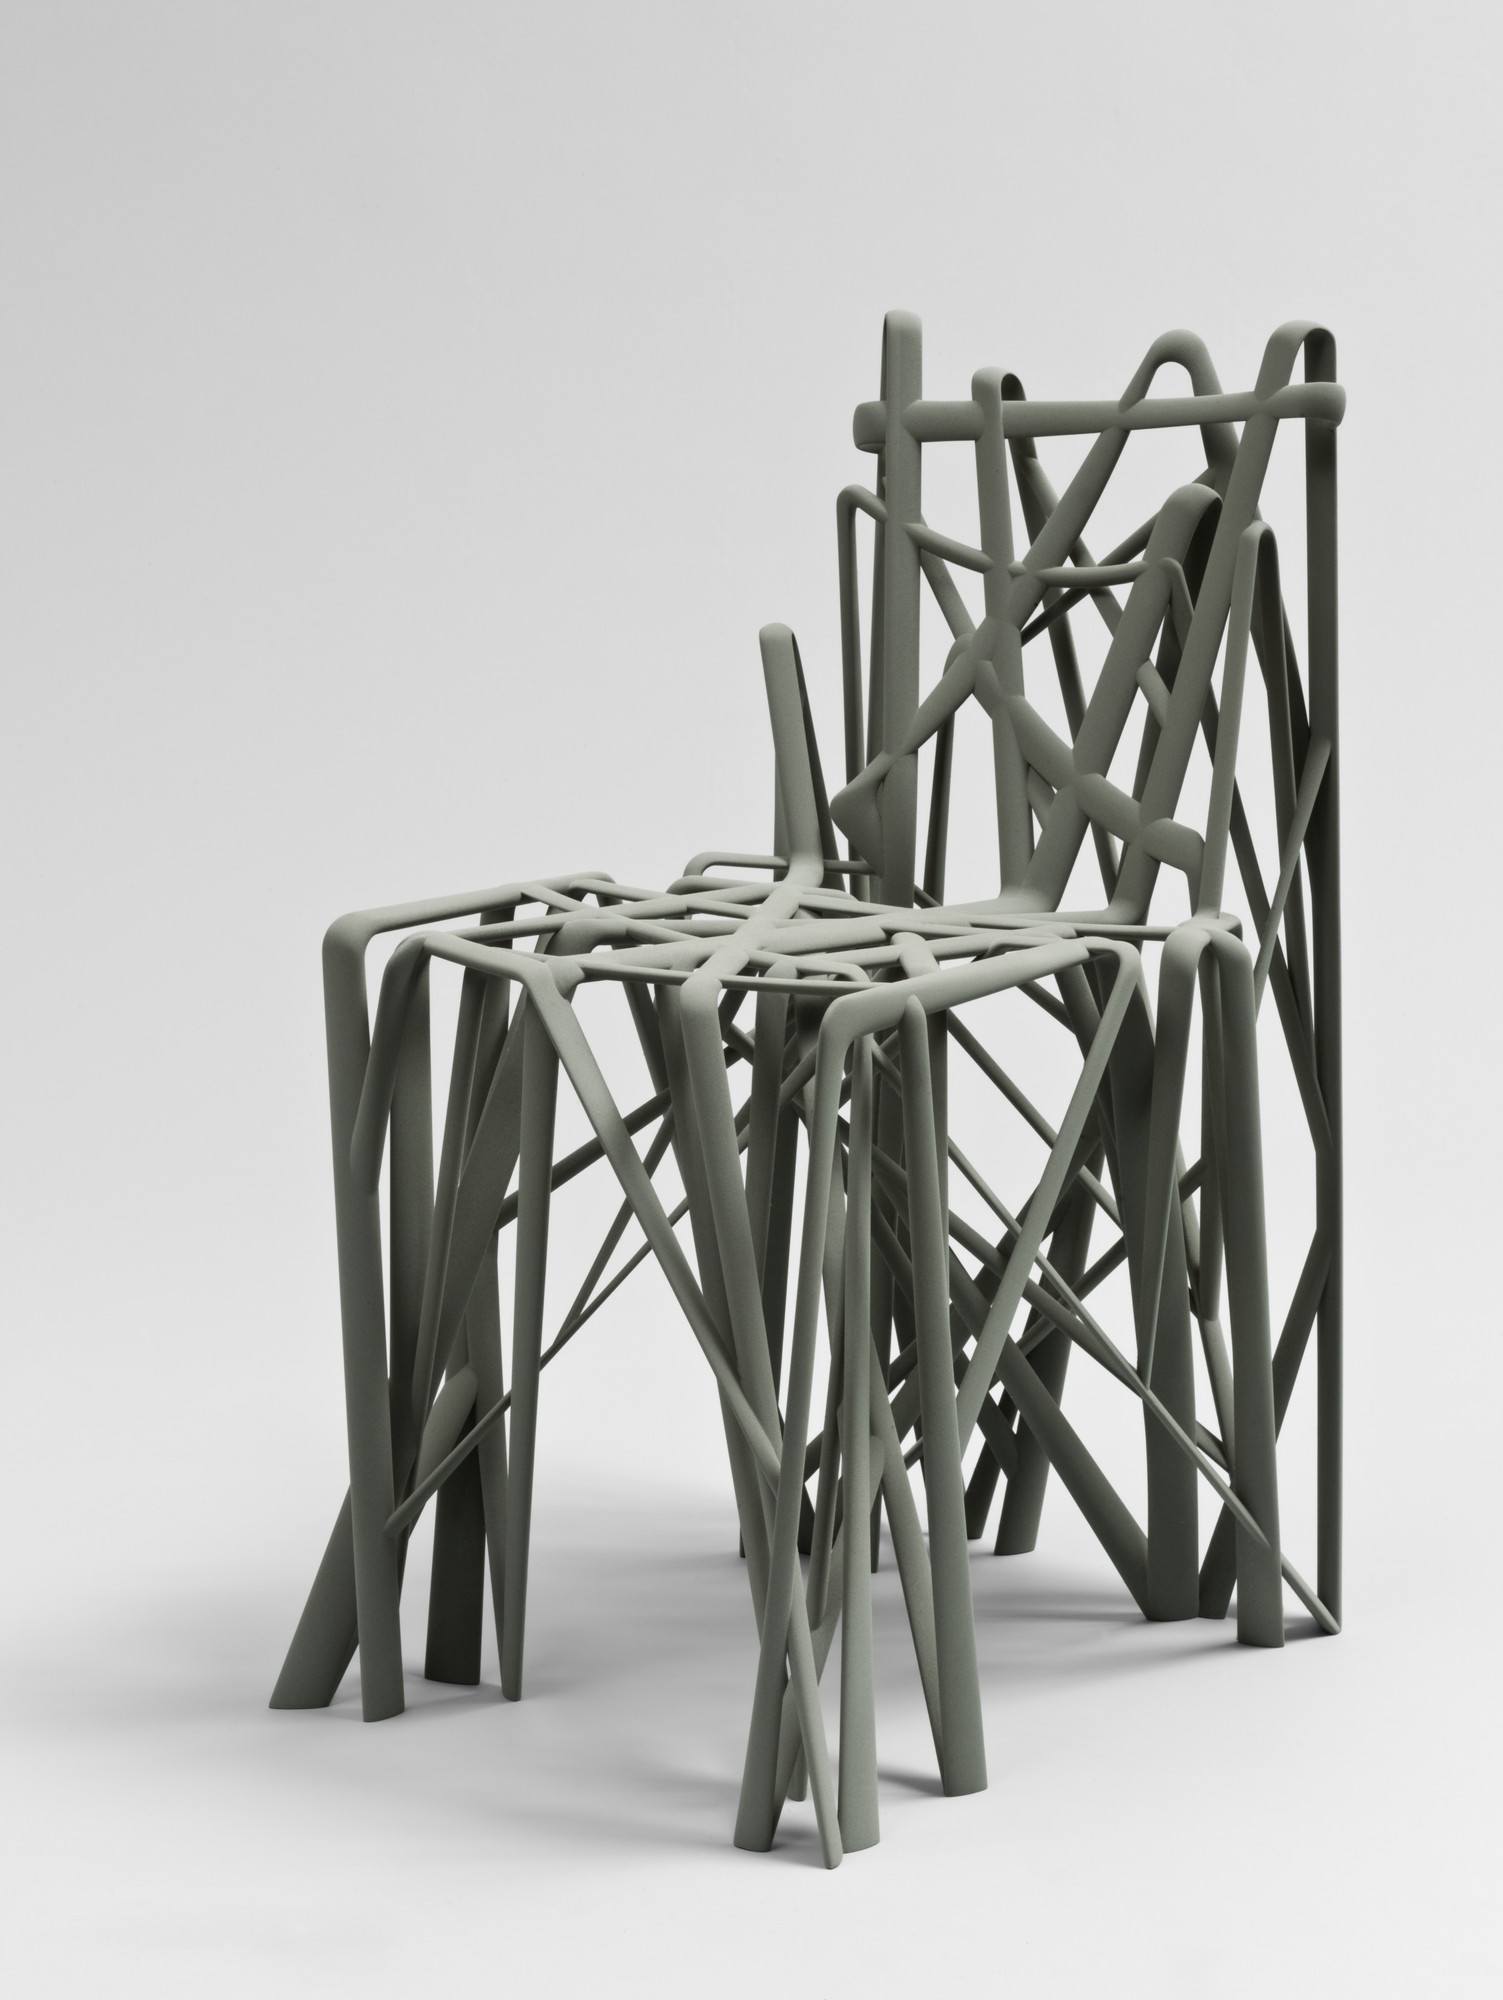 Patrick Jouin. C2 Solid Chair. 2004